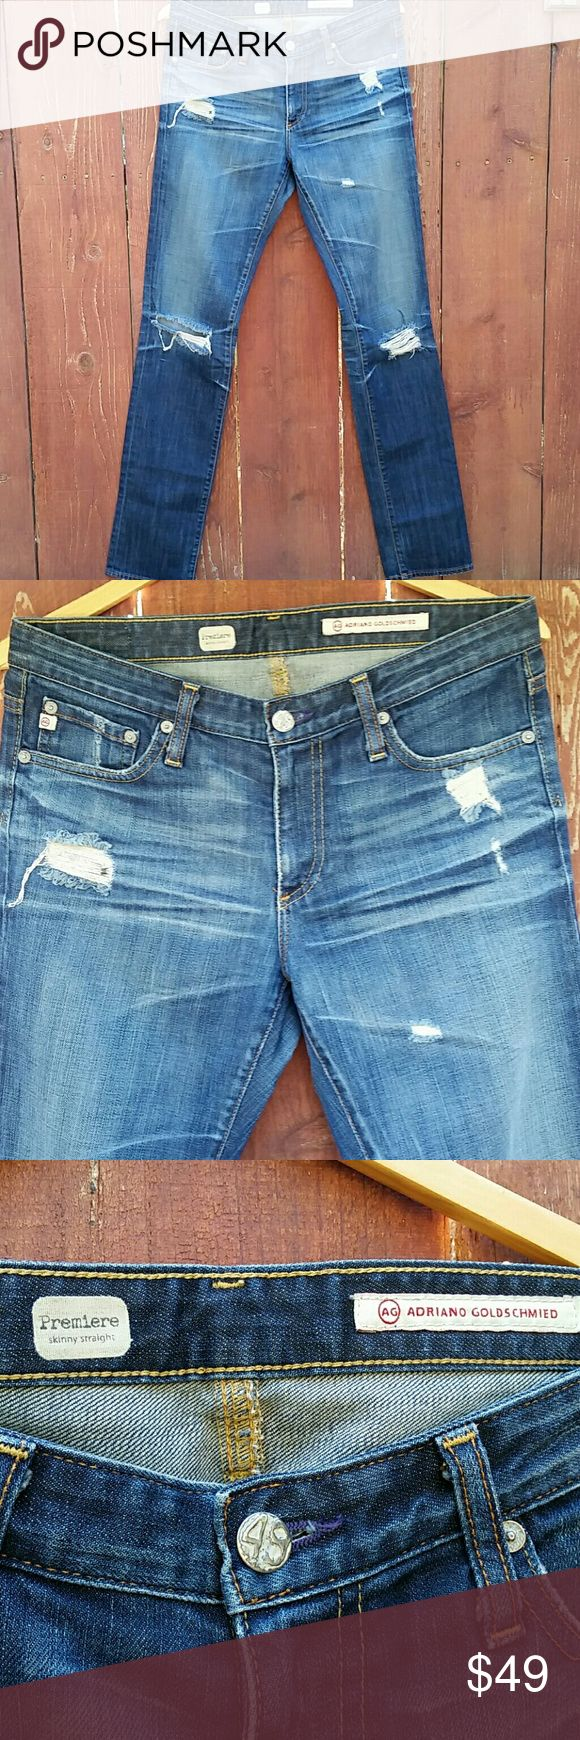 🎀AG ADRIANO GOLDSCHMIED DISTRESSED Premiere AG ADRIANO GOLDSCHMIED PREMIERE SKINNY STRAIGHT JEANS.  SIZE 29R. 98% COTTON,  2% PU Ag Adriano Goldschmied Jeans Straight Leg